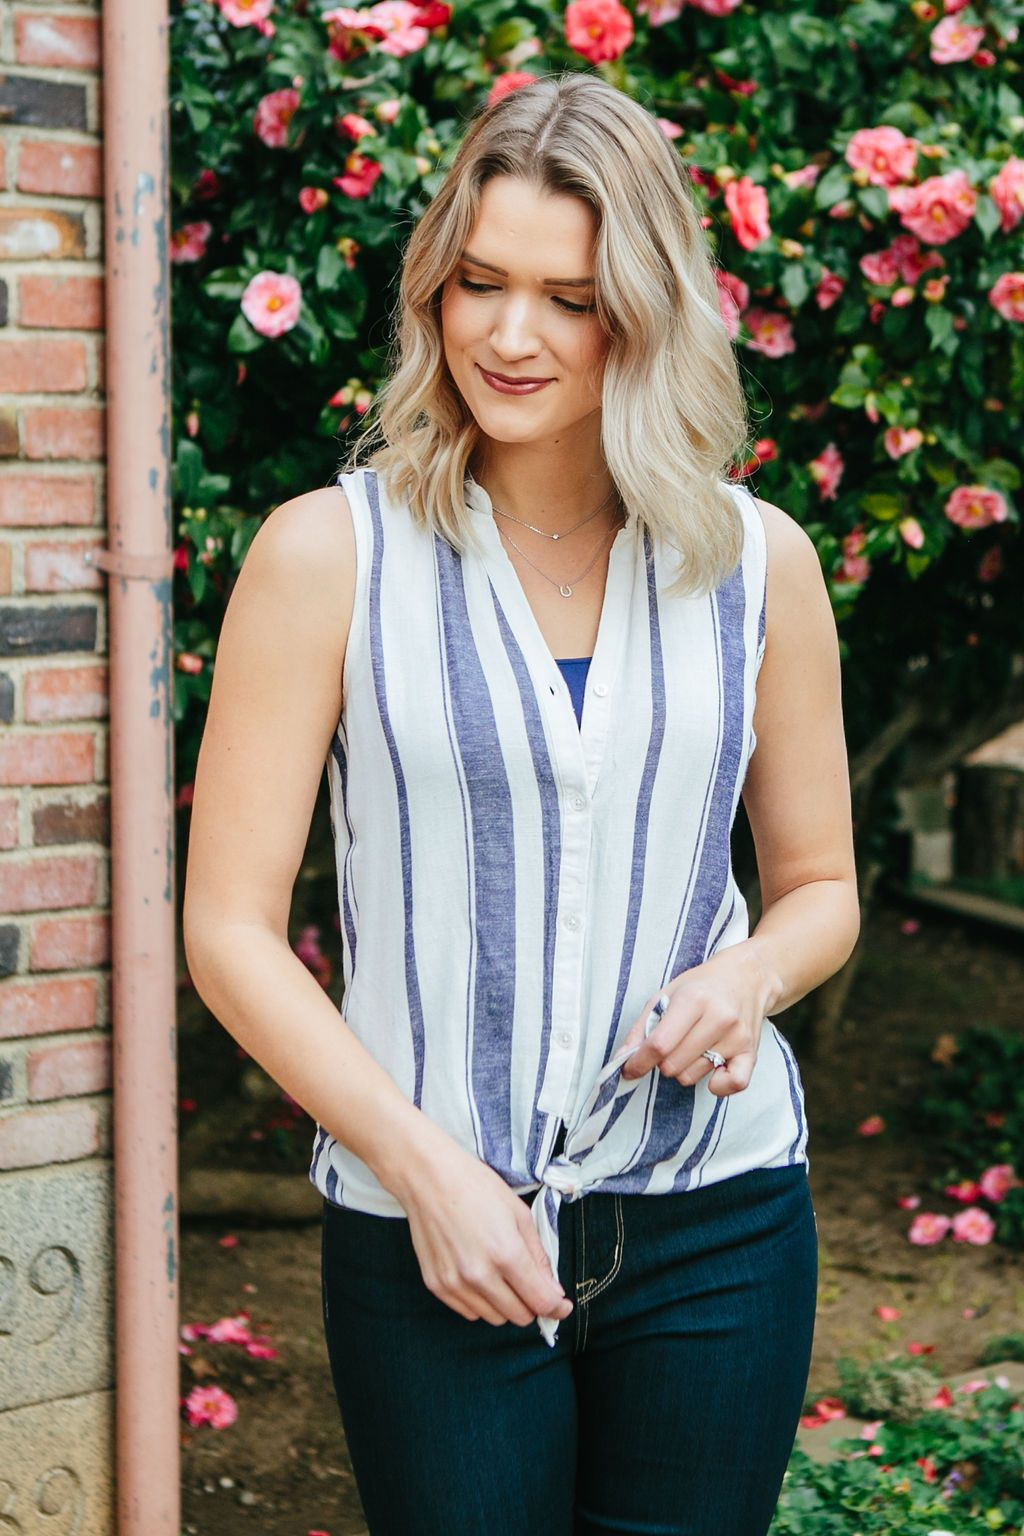 Women's White and Blue Striped Tank Top